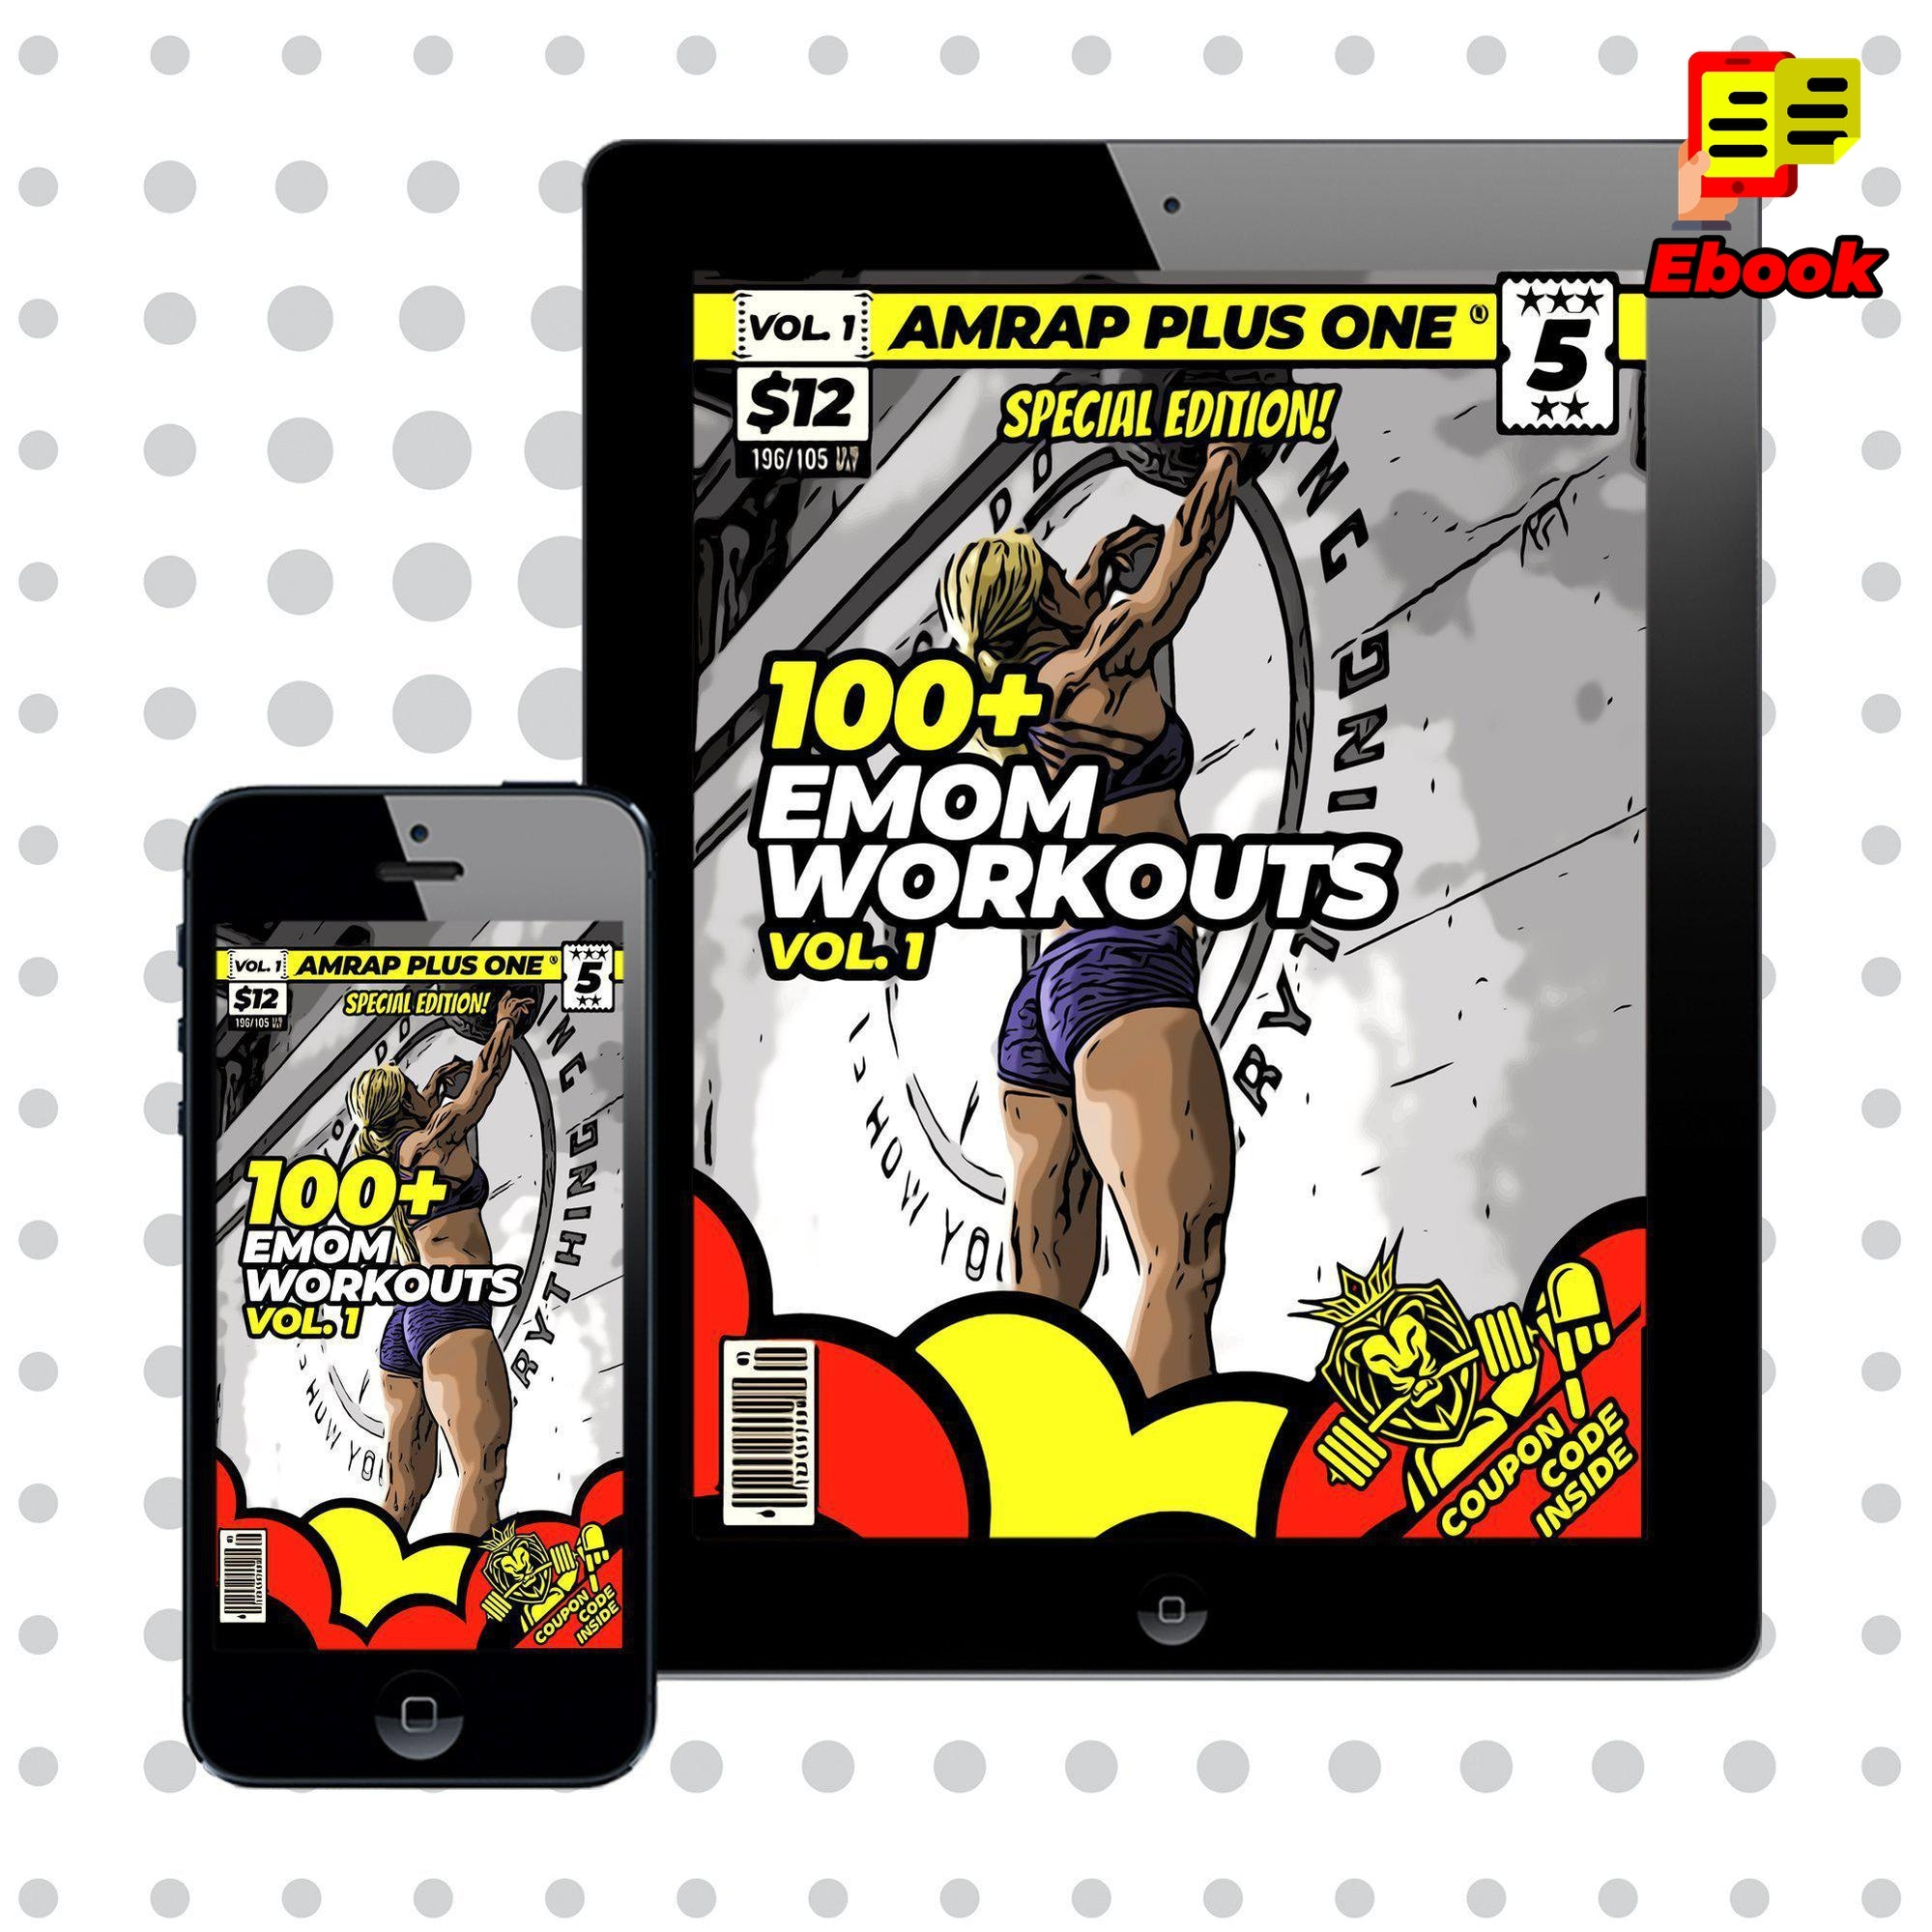 100+ EMOM Workouts Vol.1 - AMRAP Plus One